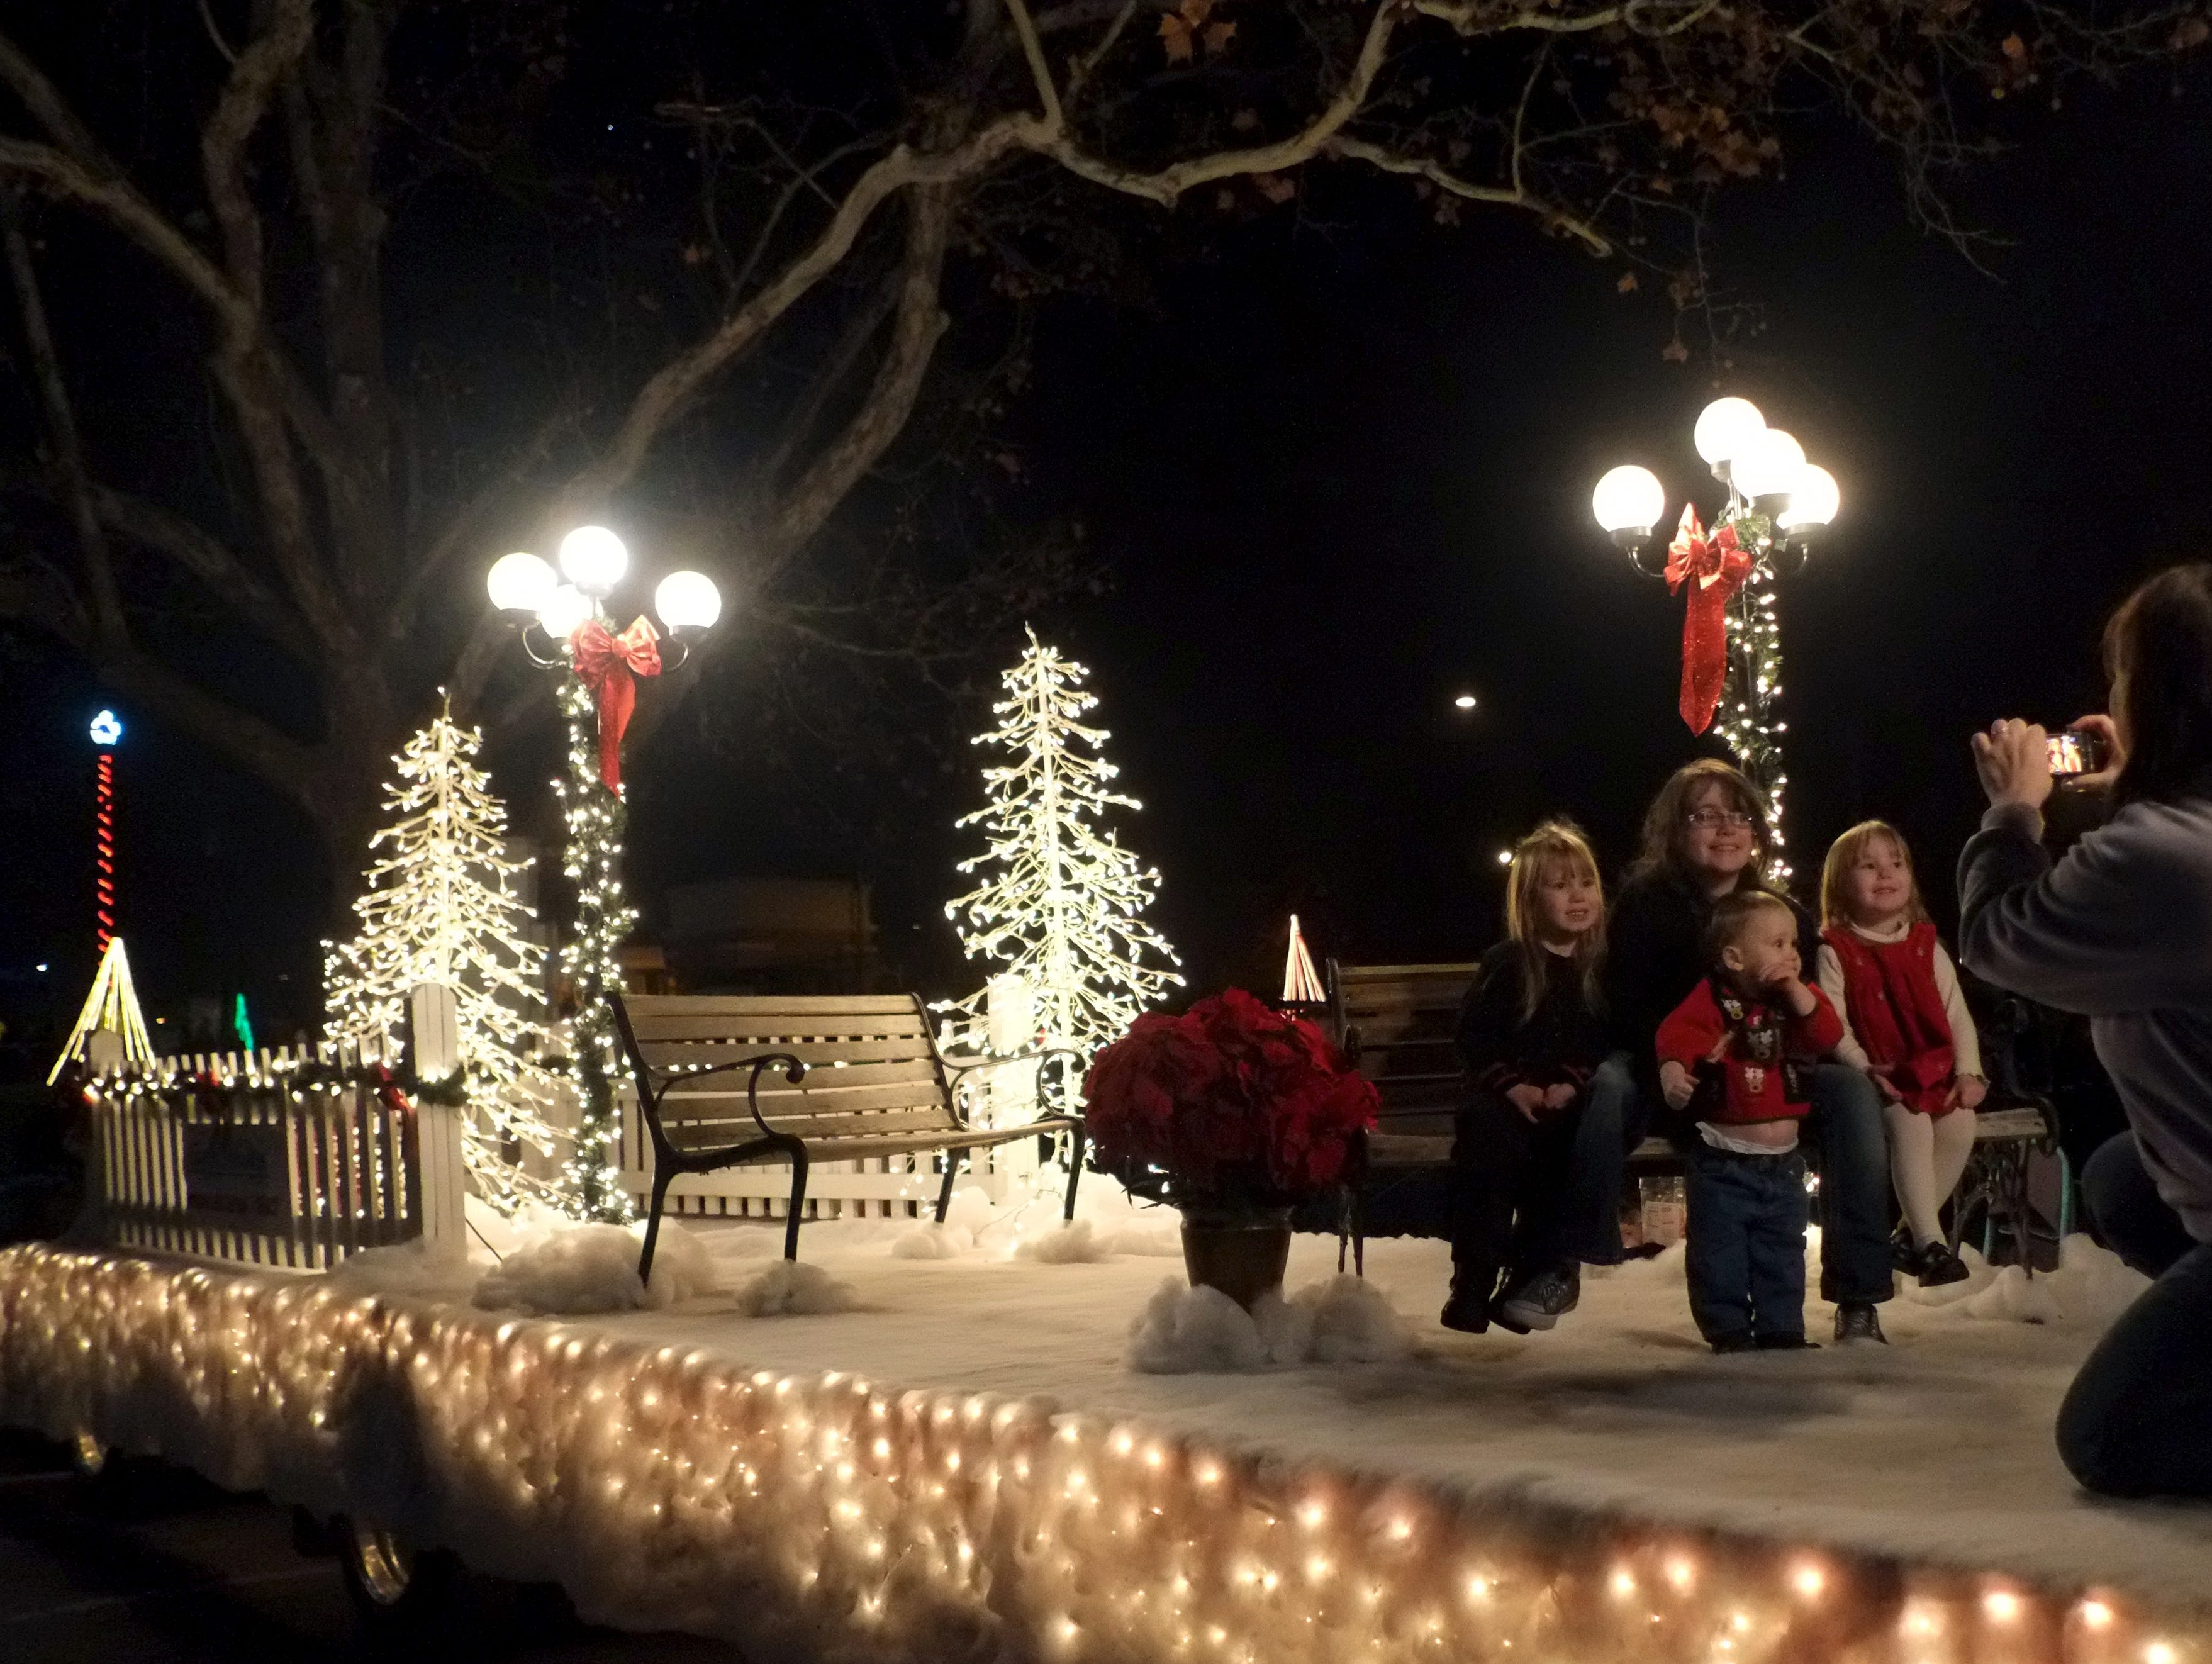 LeAnn Korth, right, takes a photo of, from left, Raleigh Korth, 5, Hannah Skeens, 14, Clay Korth, 1, and Sydney Korth, 4, on the Tennessee Valley Fair float on Friday, November 30, 2012 during Comcast Christmas at Chilhowee Park.